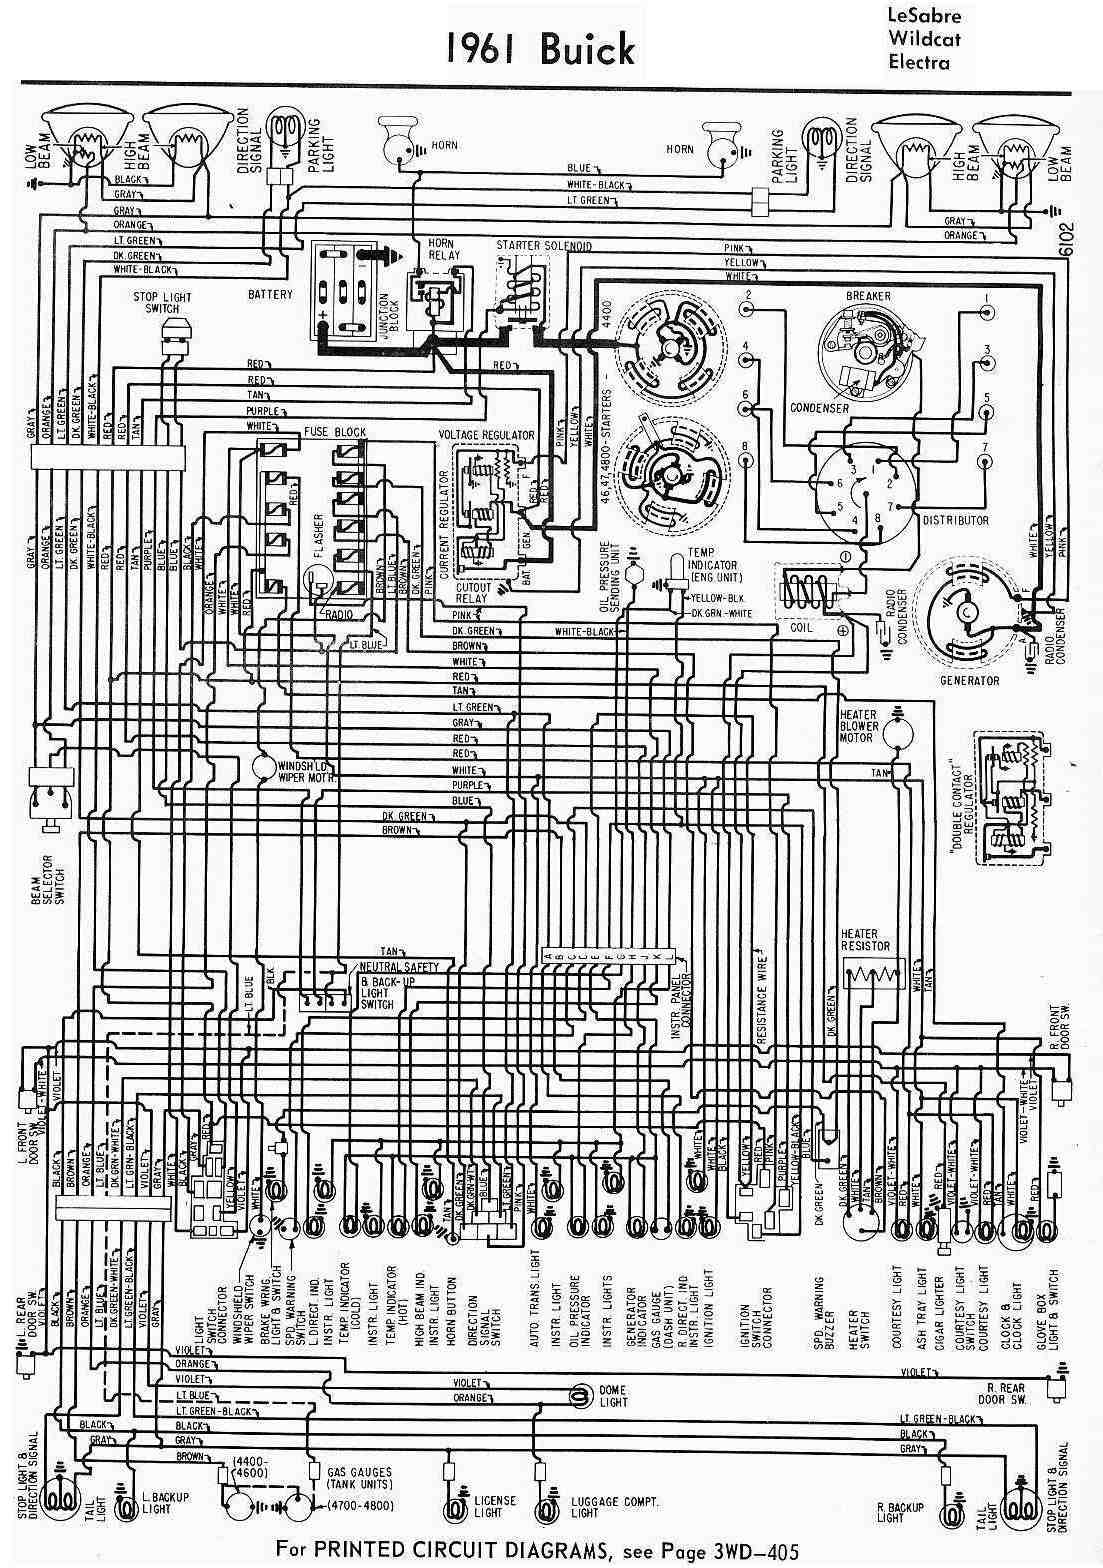 1993 chevy s10 stereo wiring diagram light switch australia hpm december 2011 | all about diagrams